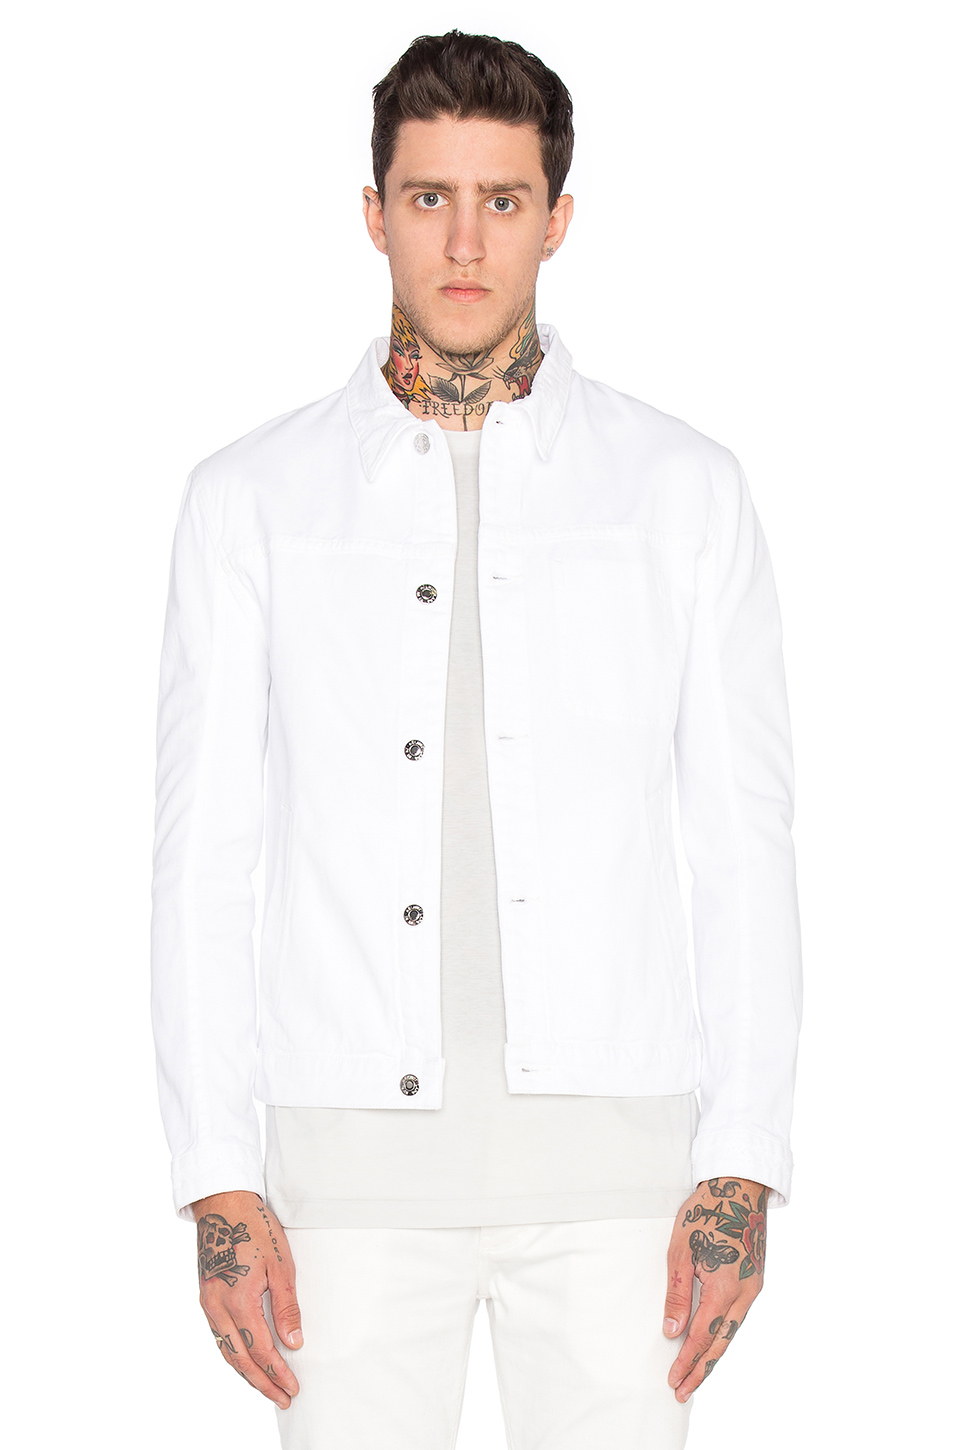 Shop for white denim jacket men online at Target. Free shipping on purchases over $35 and save 5% every day with your Target REDcard.